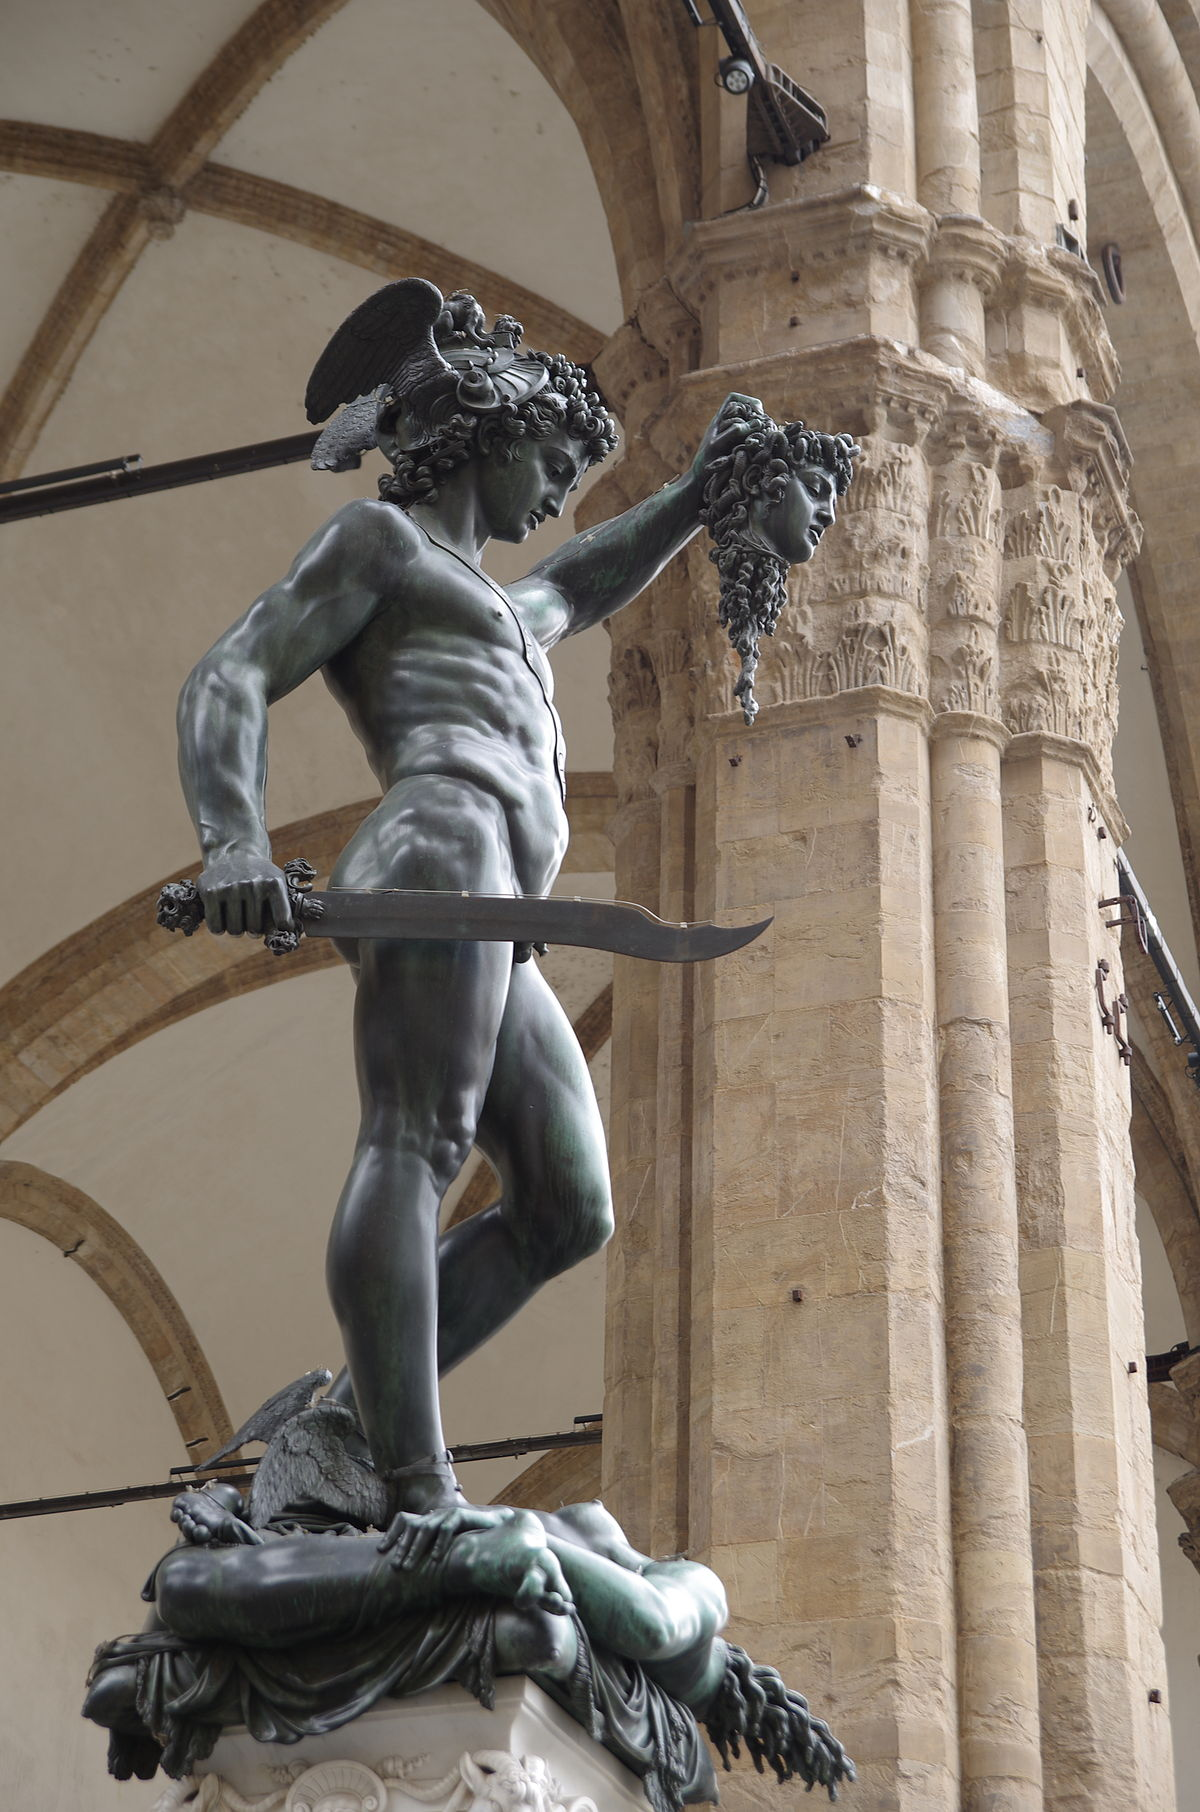 the story of perseus and medusa summary